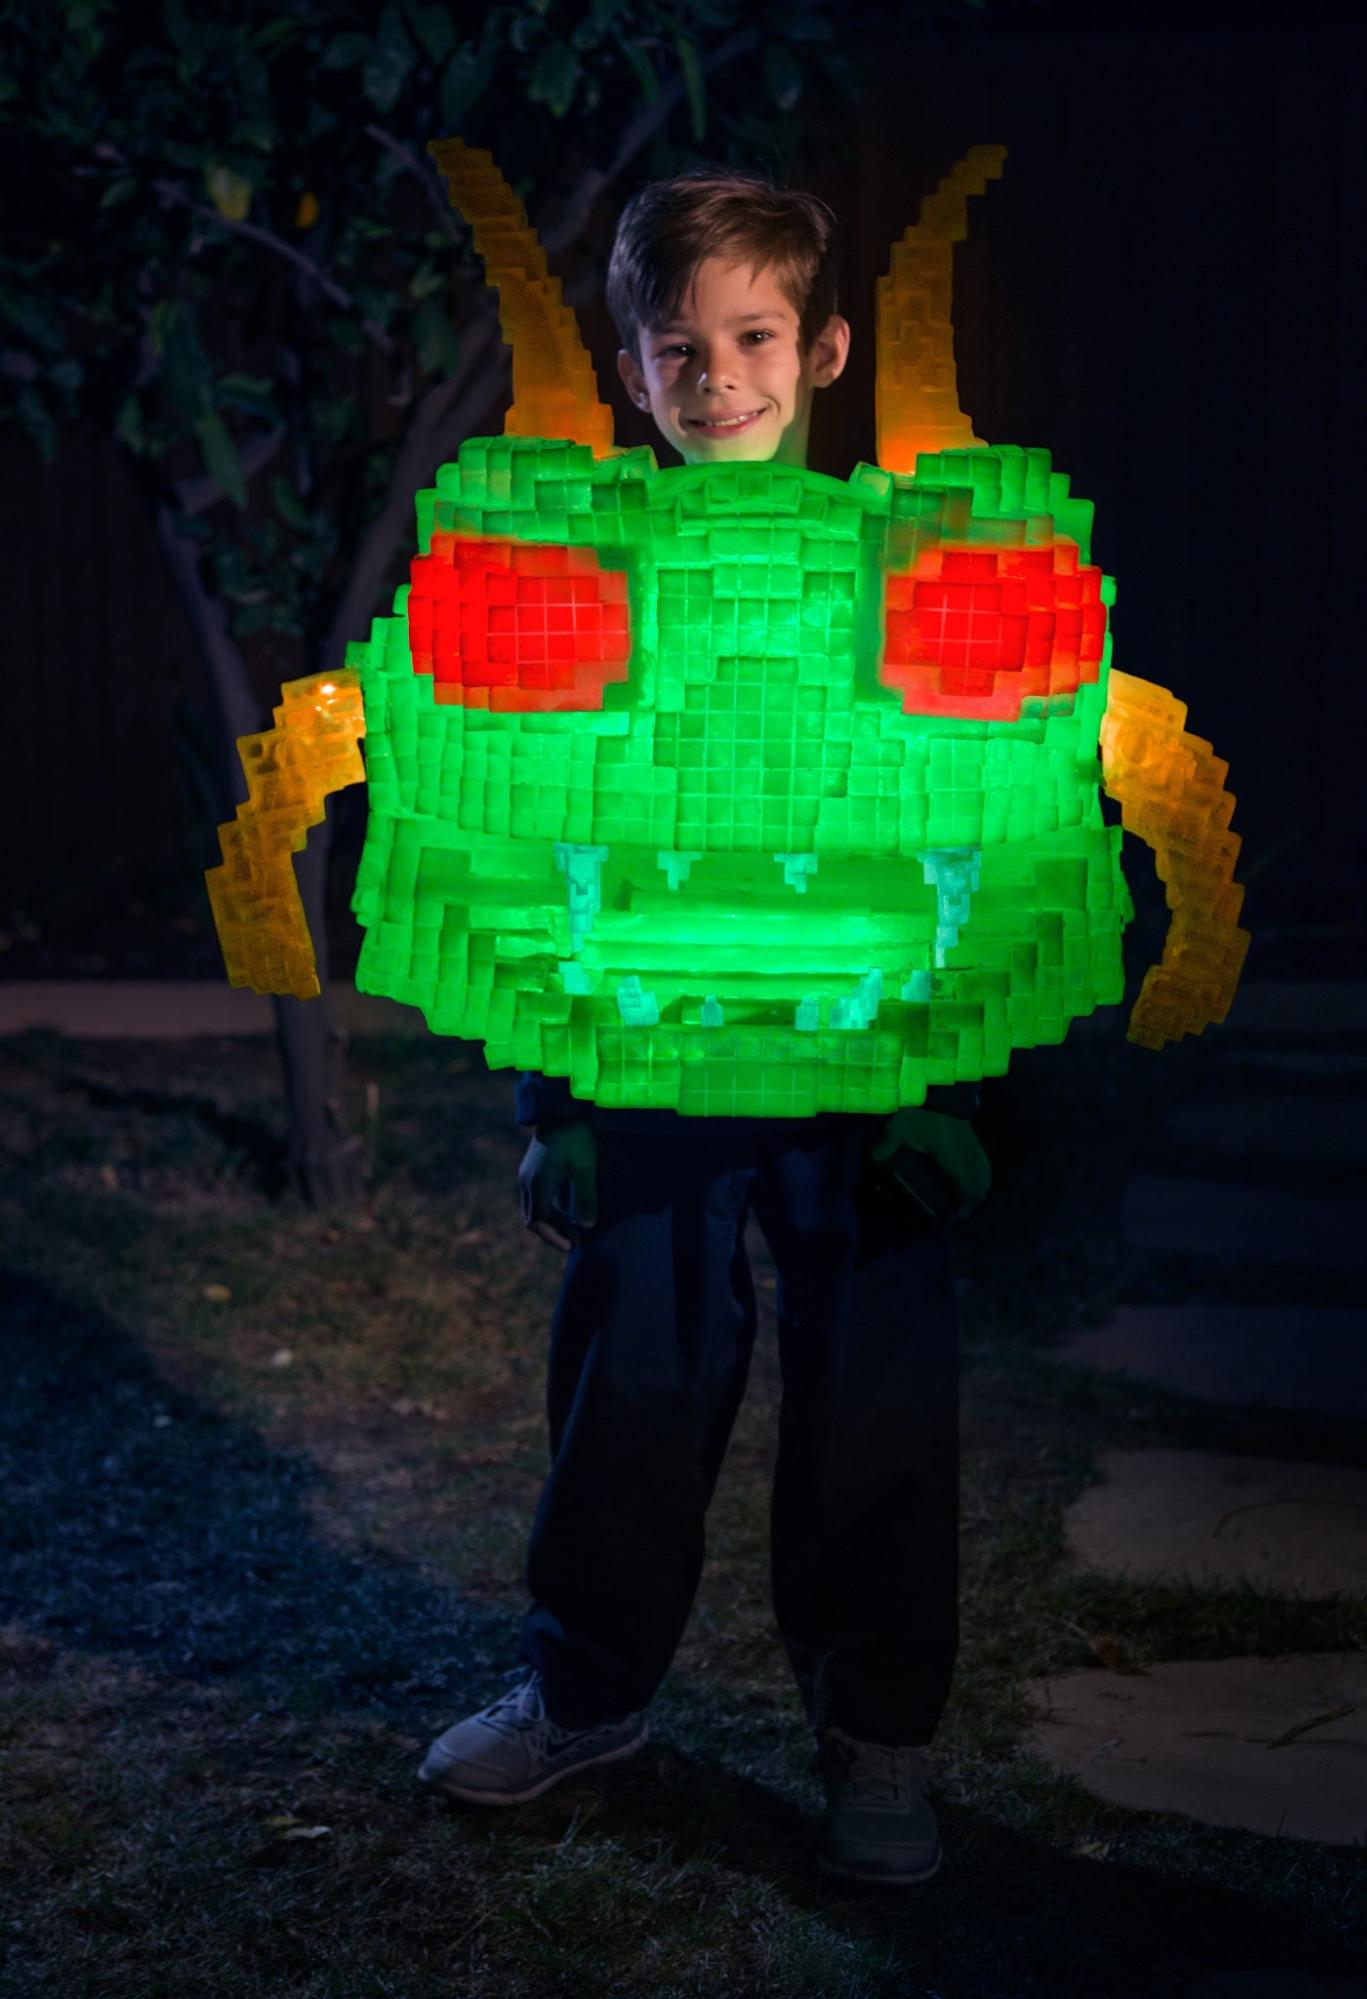 last year after halloween our family came up with the crazy idea of making an 8 bit looking centipede halloween costume inspired by the movie pixels and